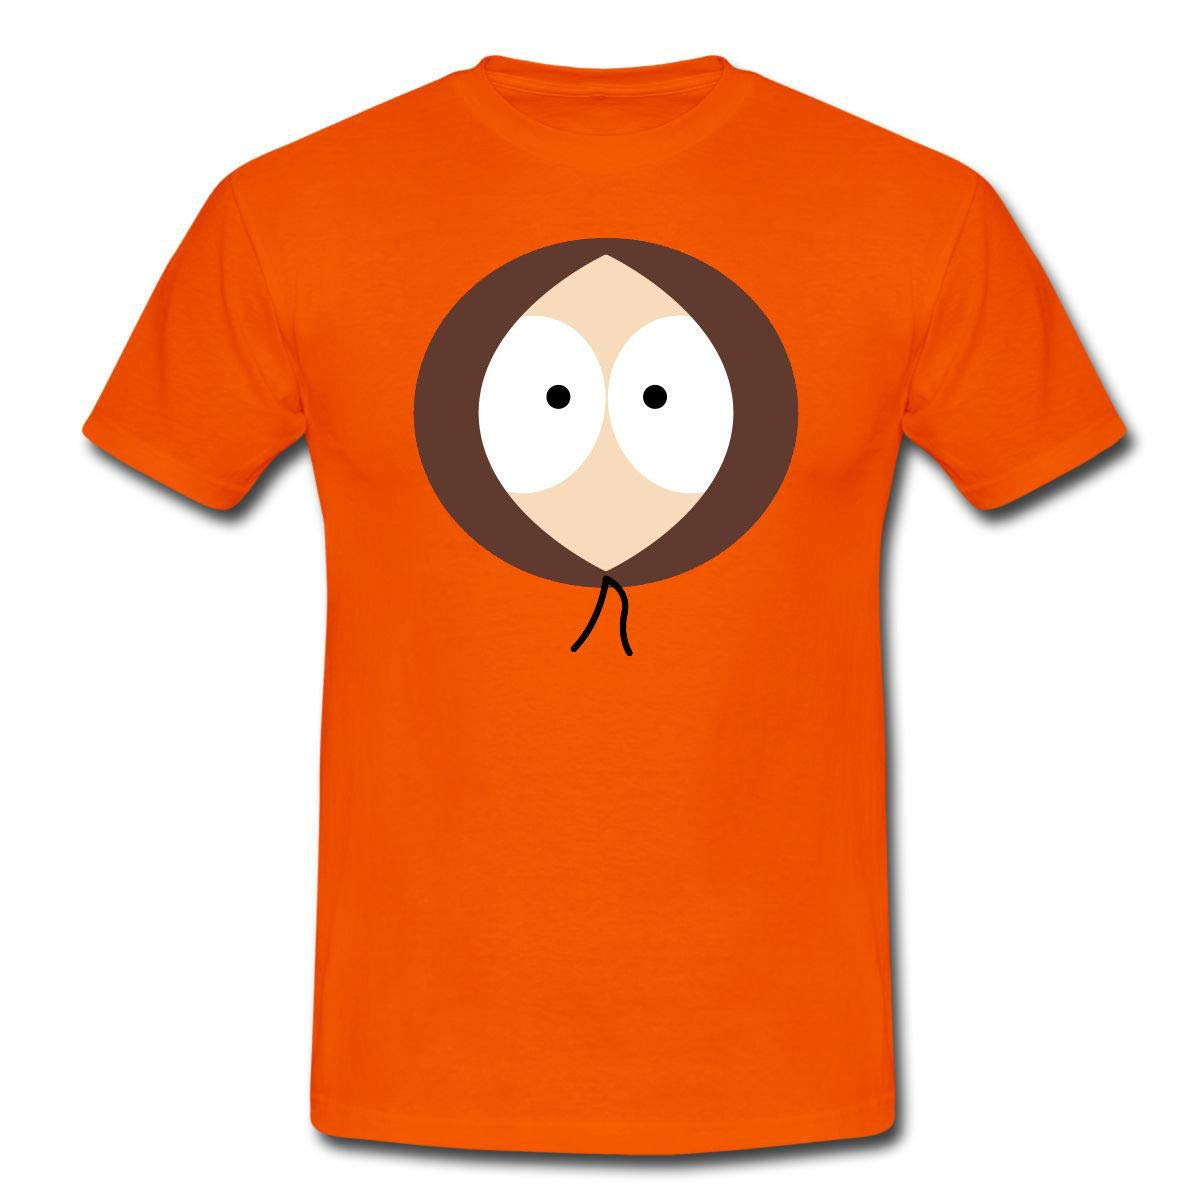 T-shirt uomo Kenny, South Park serie tv animazione cartone animato inspired